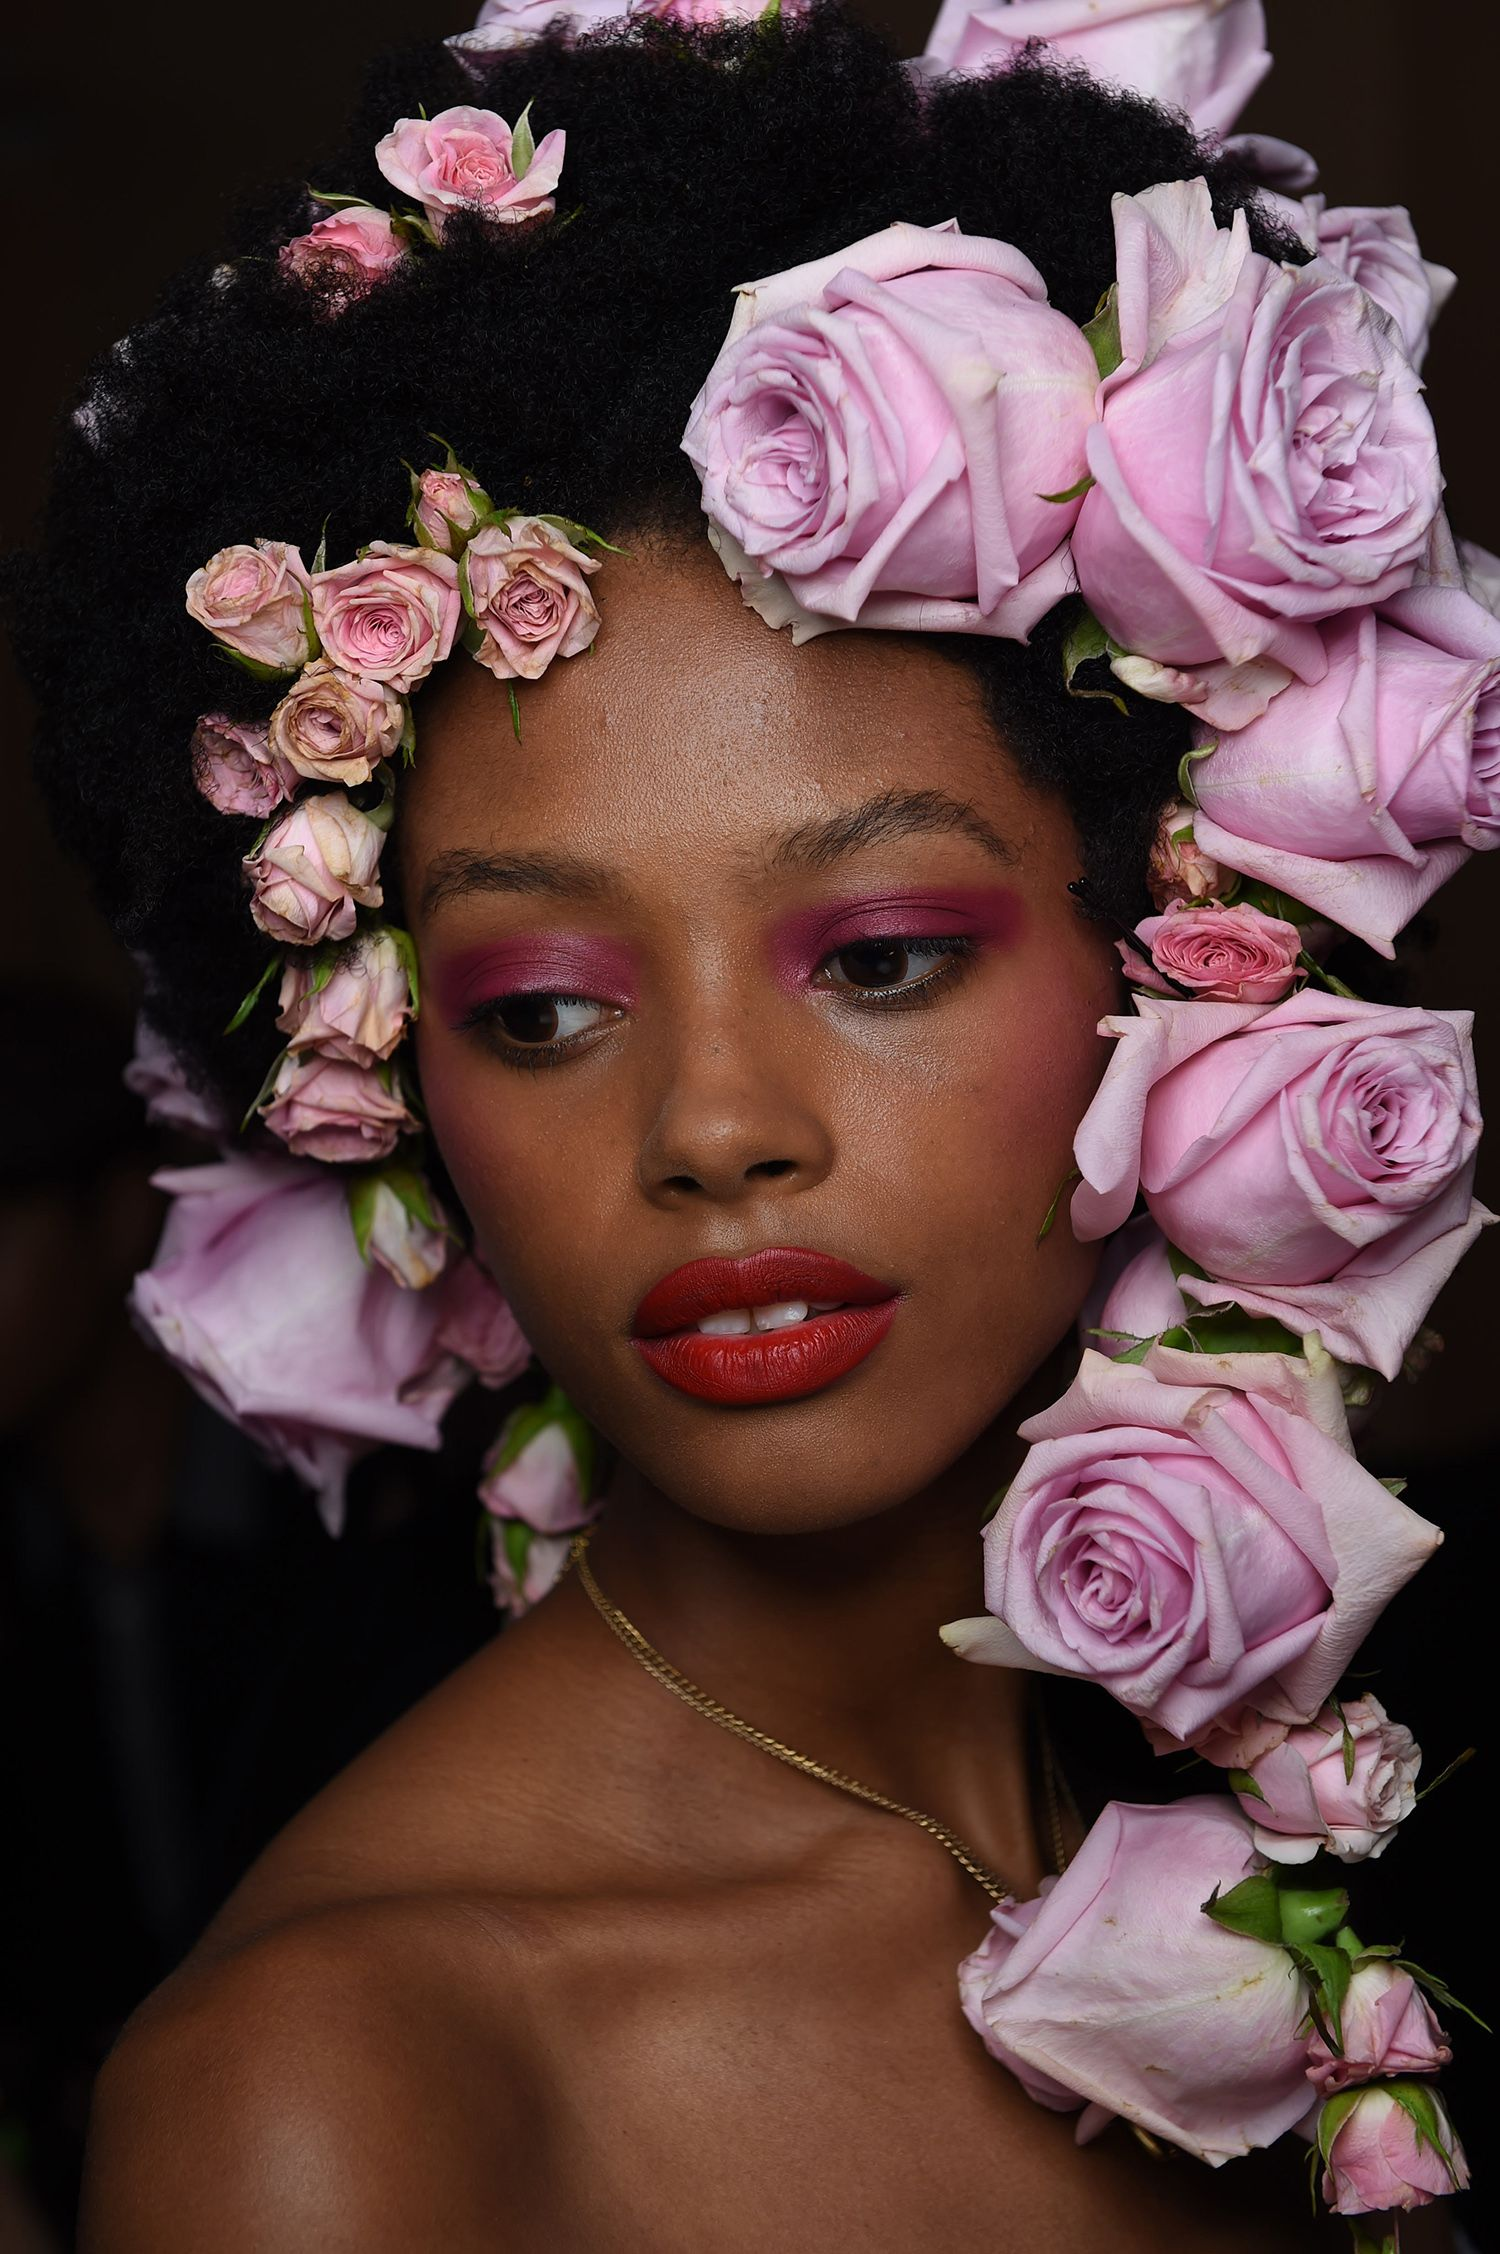 Spring/summer 2019 make-up trends - Catwalk beauty trends